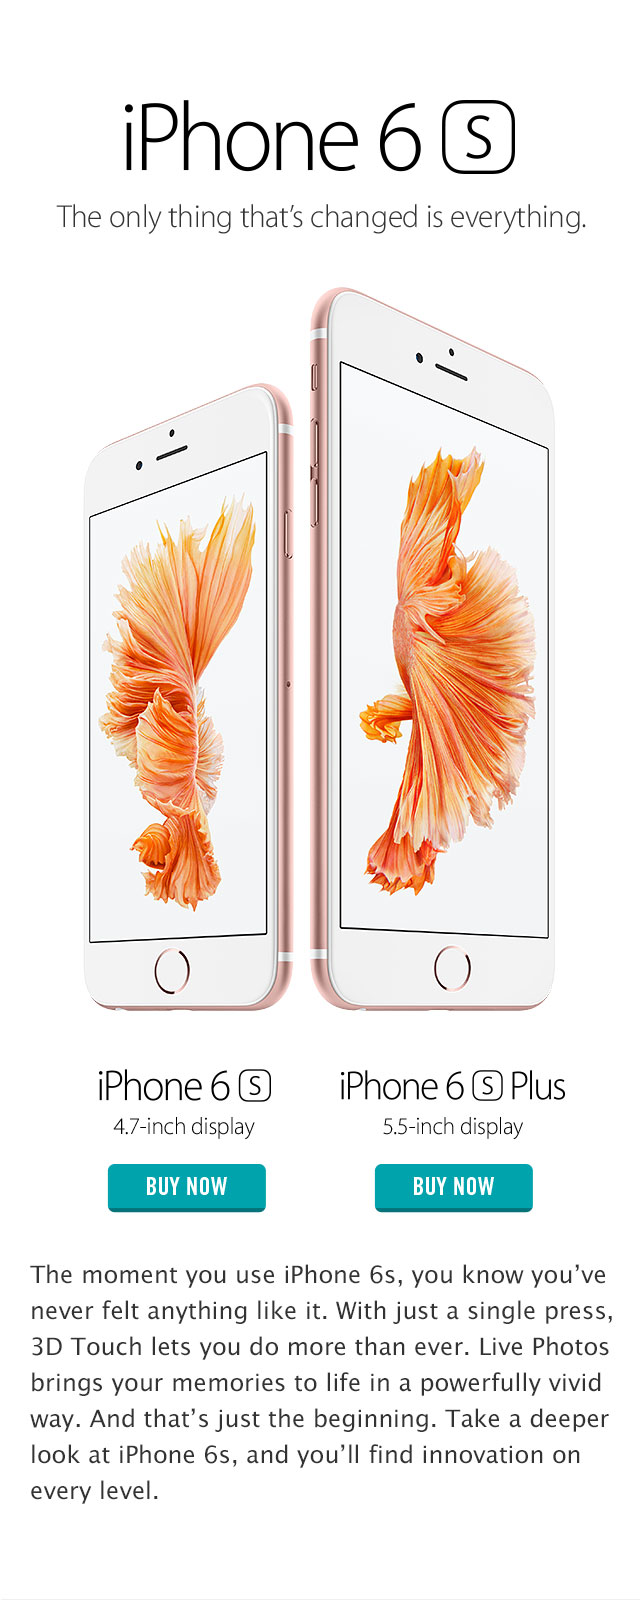 iphone 6s the only thing that has changed is everything